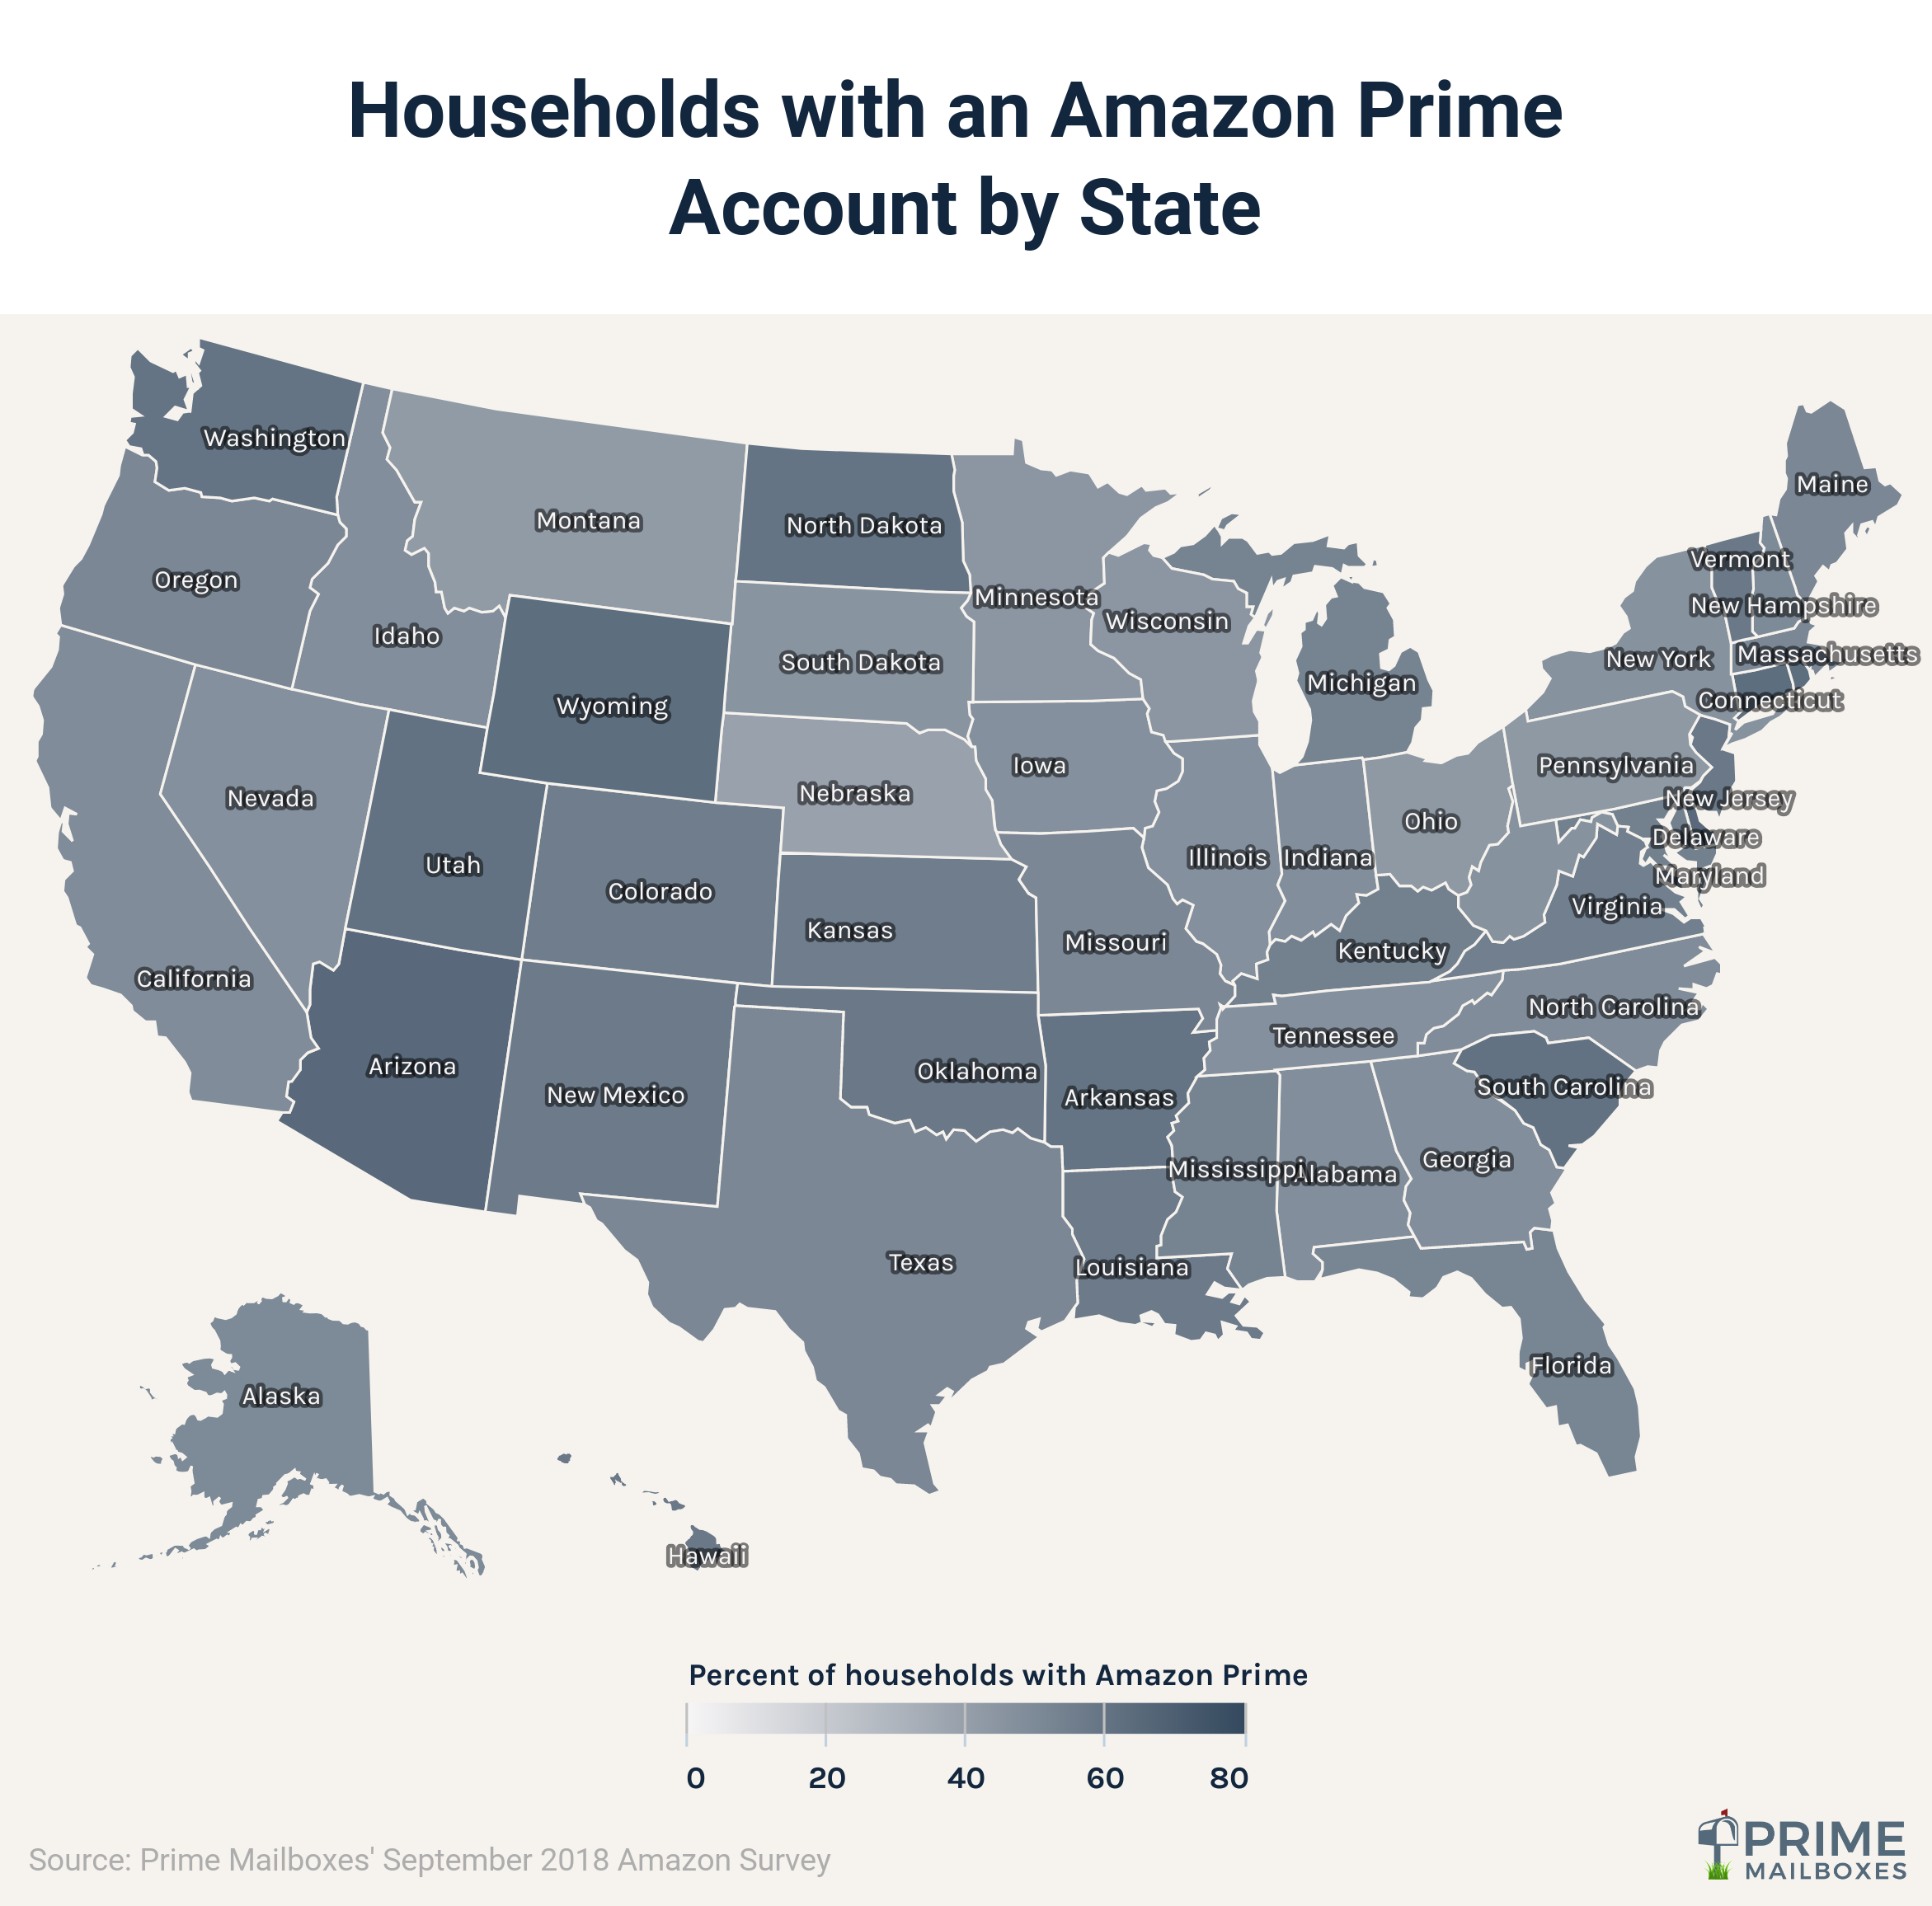 Amazon Prime Households by State